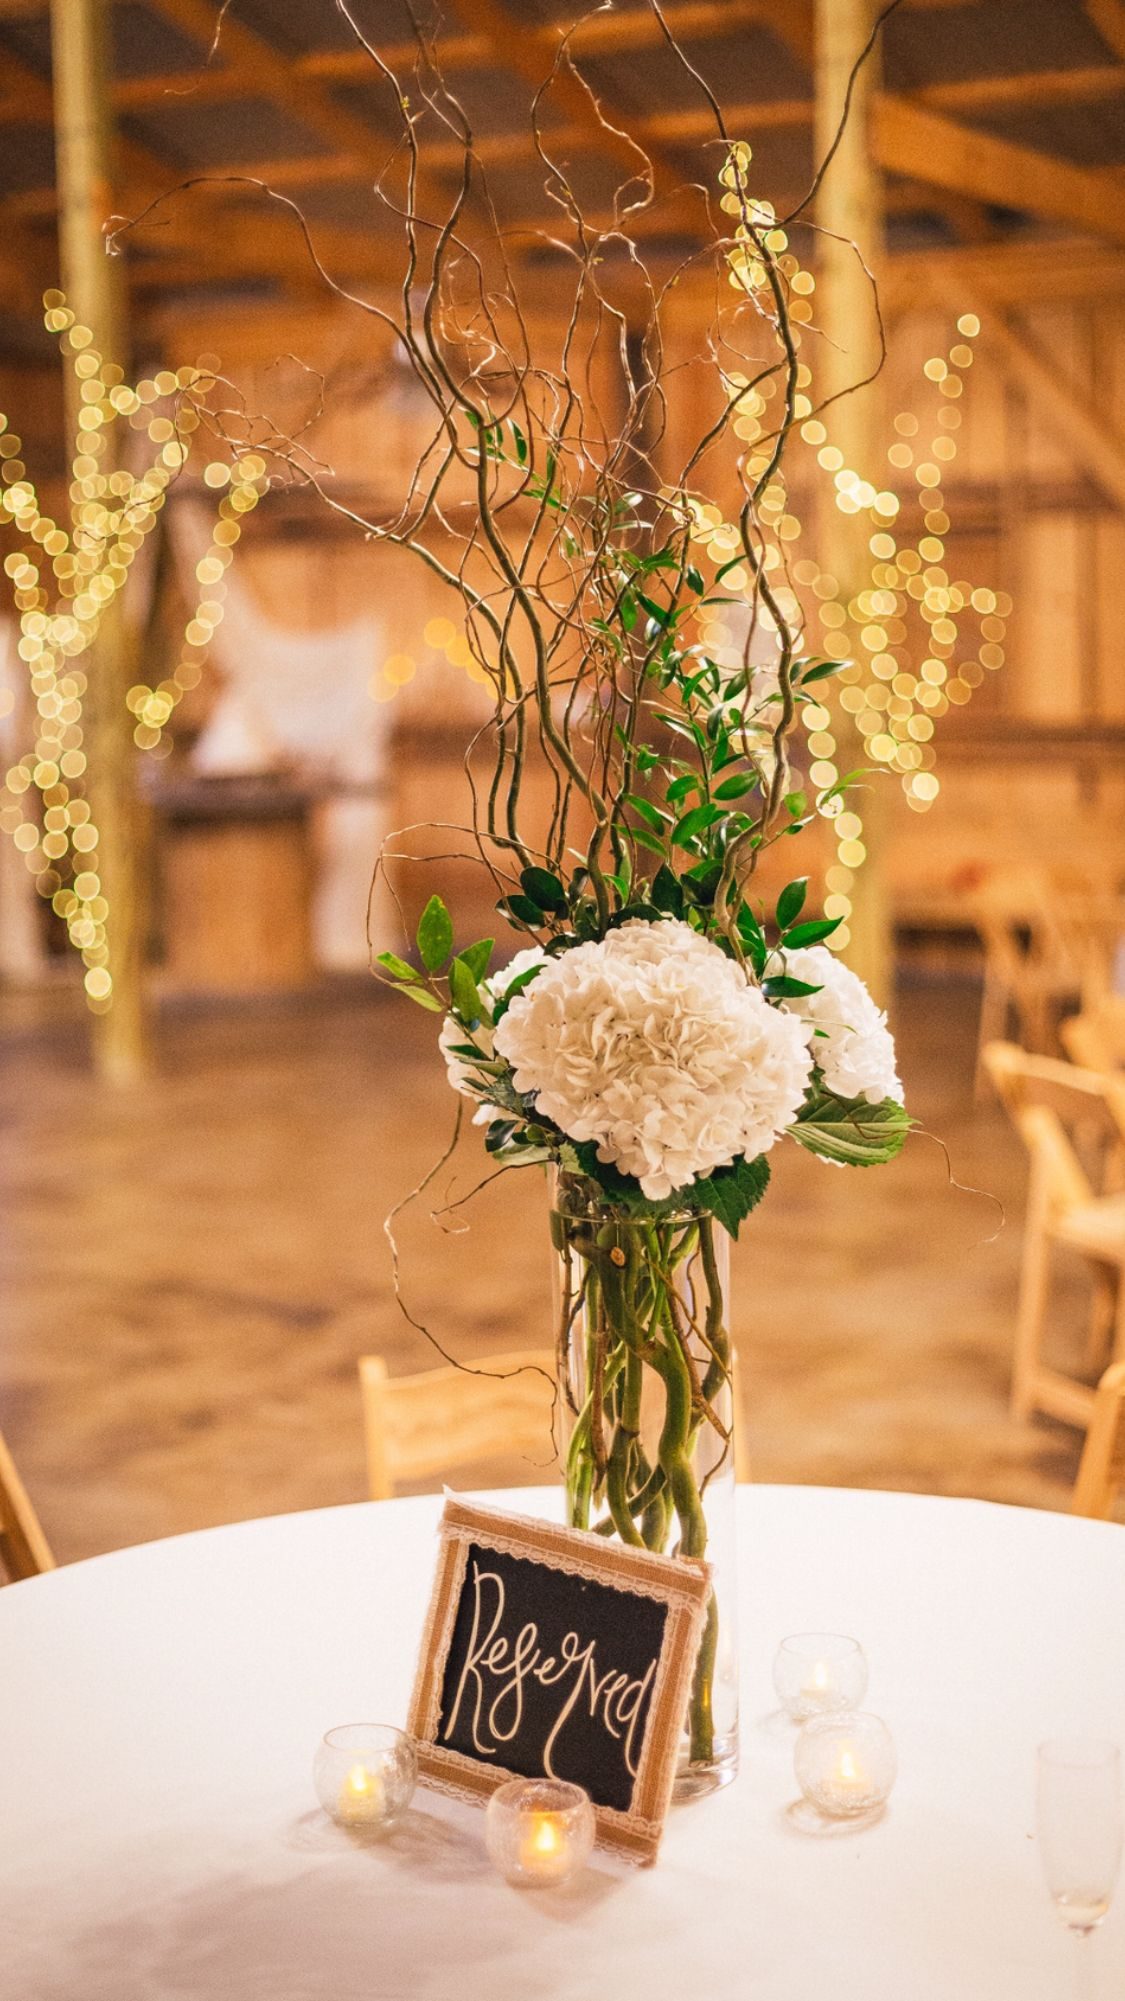 Hochzeit Farben Hydrangeas And Curly Willow Branches Centerpiece